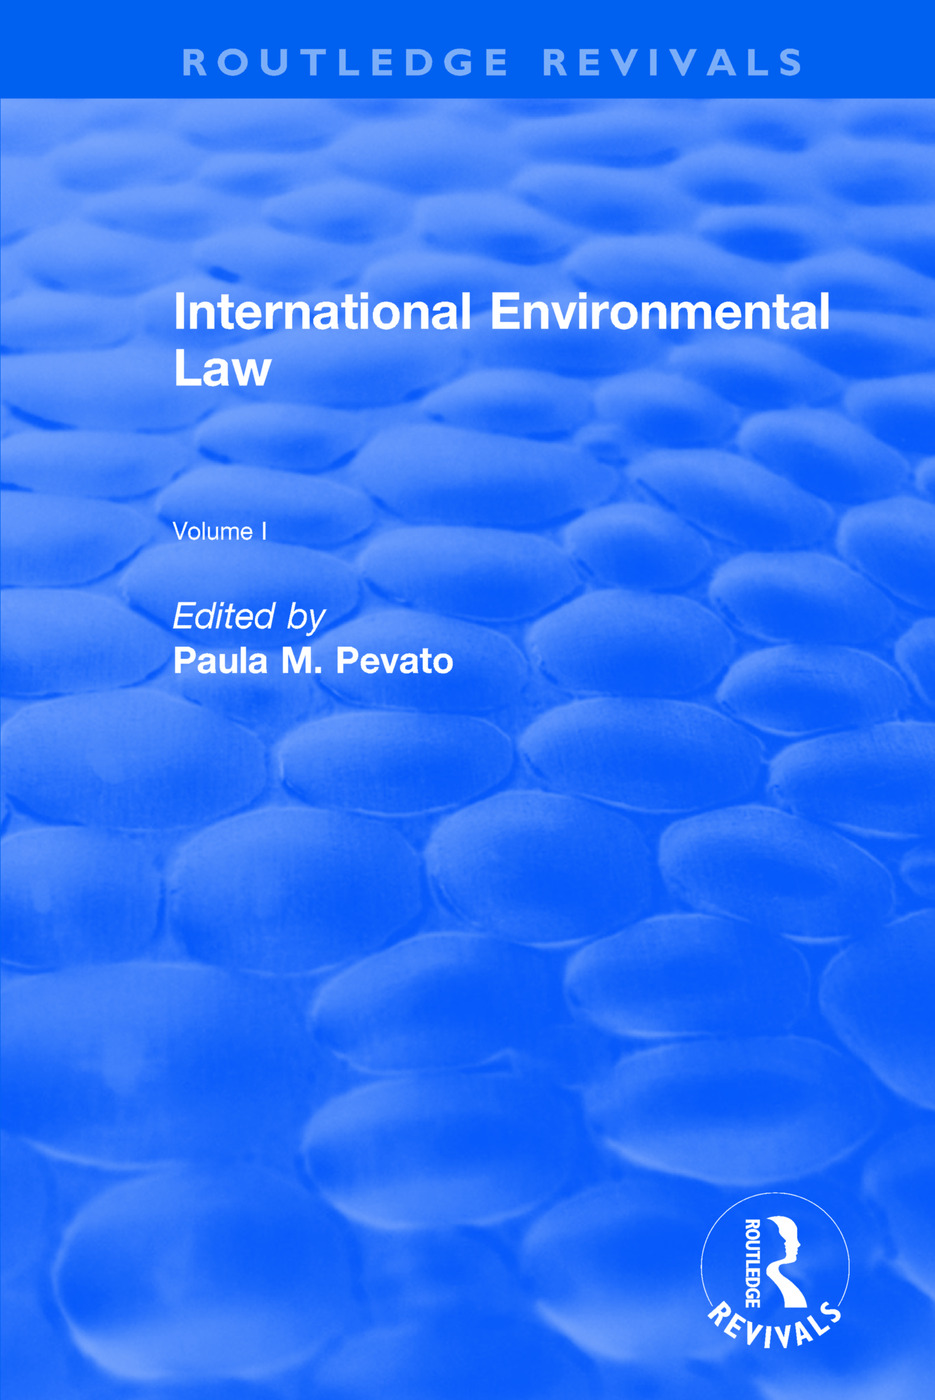 Allen L. Springer (1977), 'Towards a Meaningful Concept of Pollution in International Law', International and Comparative Law Quarterly, 26, pp. 531-57